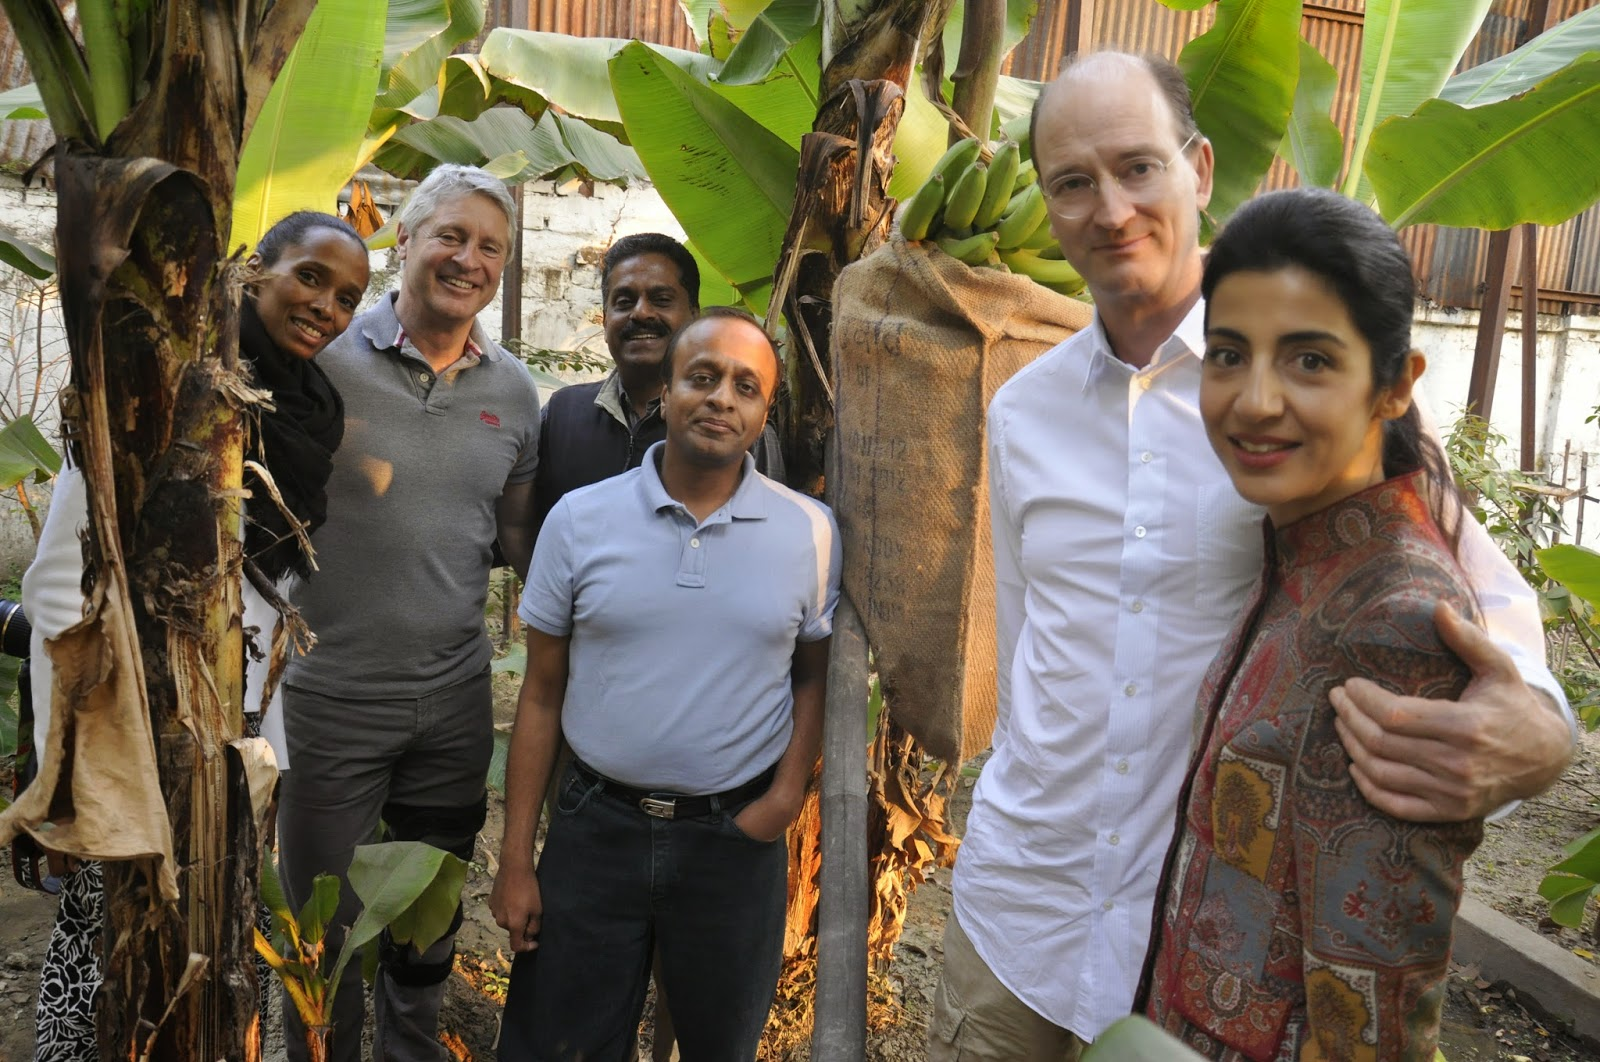 Philipp Schoeller with wife Sara Schoeller, Walter Raizner & Delphine Raizner, with Murli Khemka admiring the fruit trees at Mulvany House, Kolkata